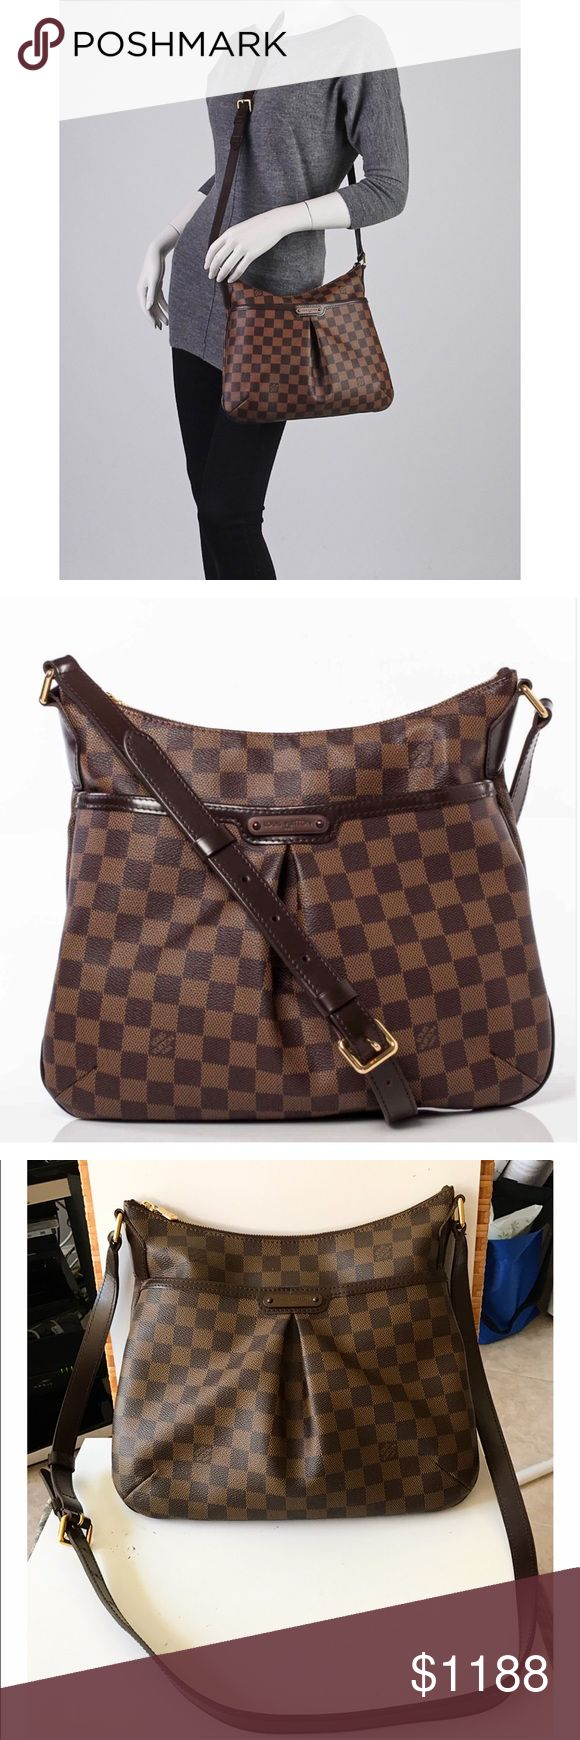 25 best ideas about louis vuitton crossbody on pinterest louis vuitton crossbody bag louis. Black Bedroom Furniture Sets. Home Design Ideas